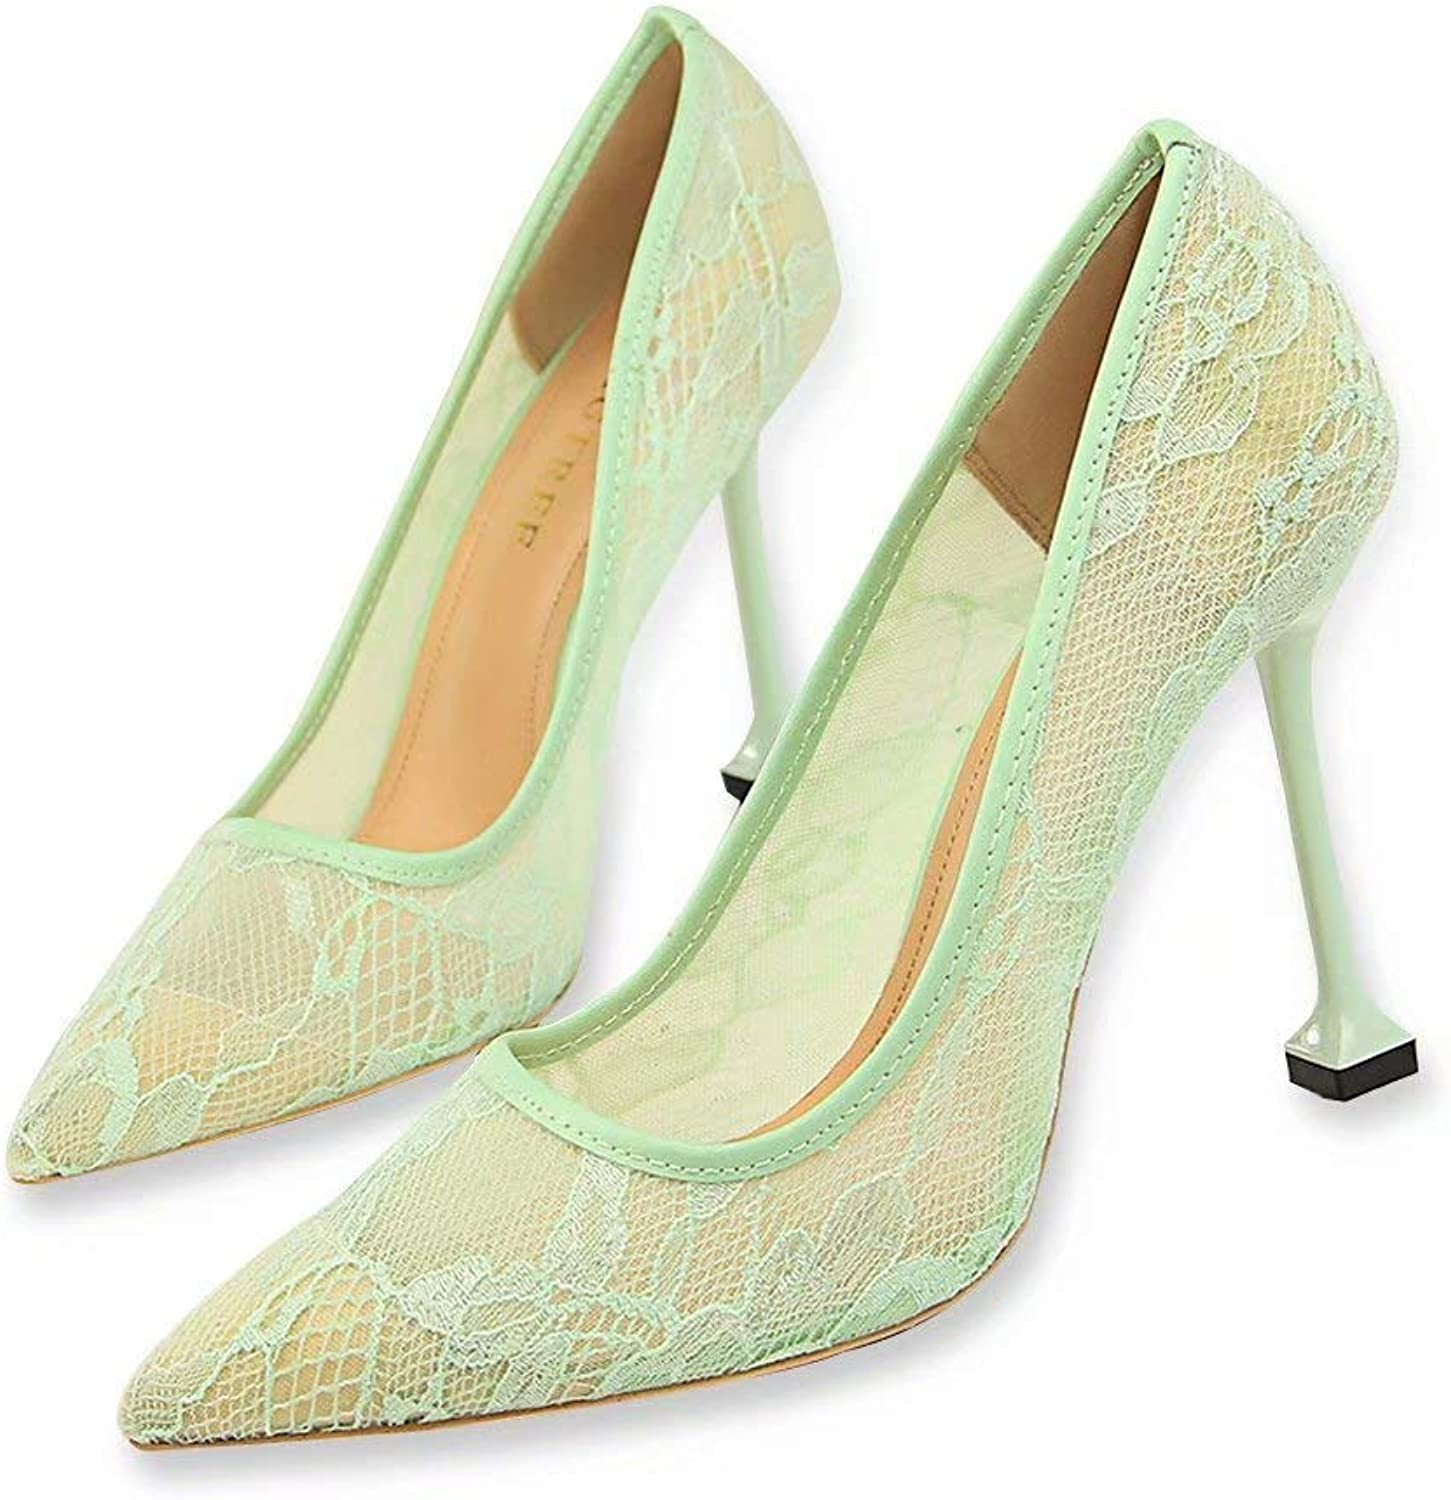 EDGssi23 Women's Lace High Heels Pointed Toe Pump Dress shoes Sandal Wedding Party Evening High Heel